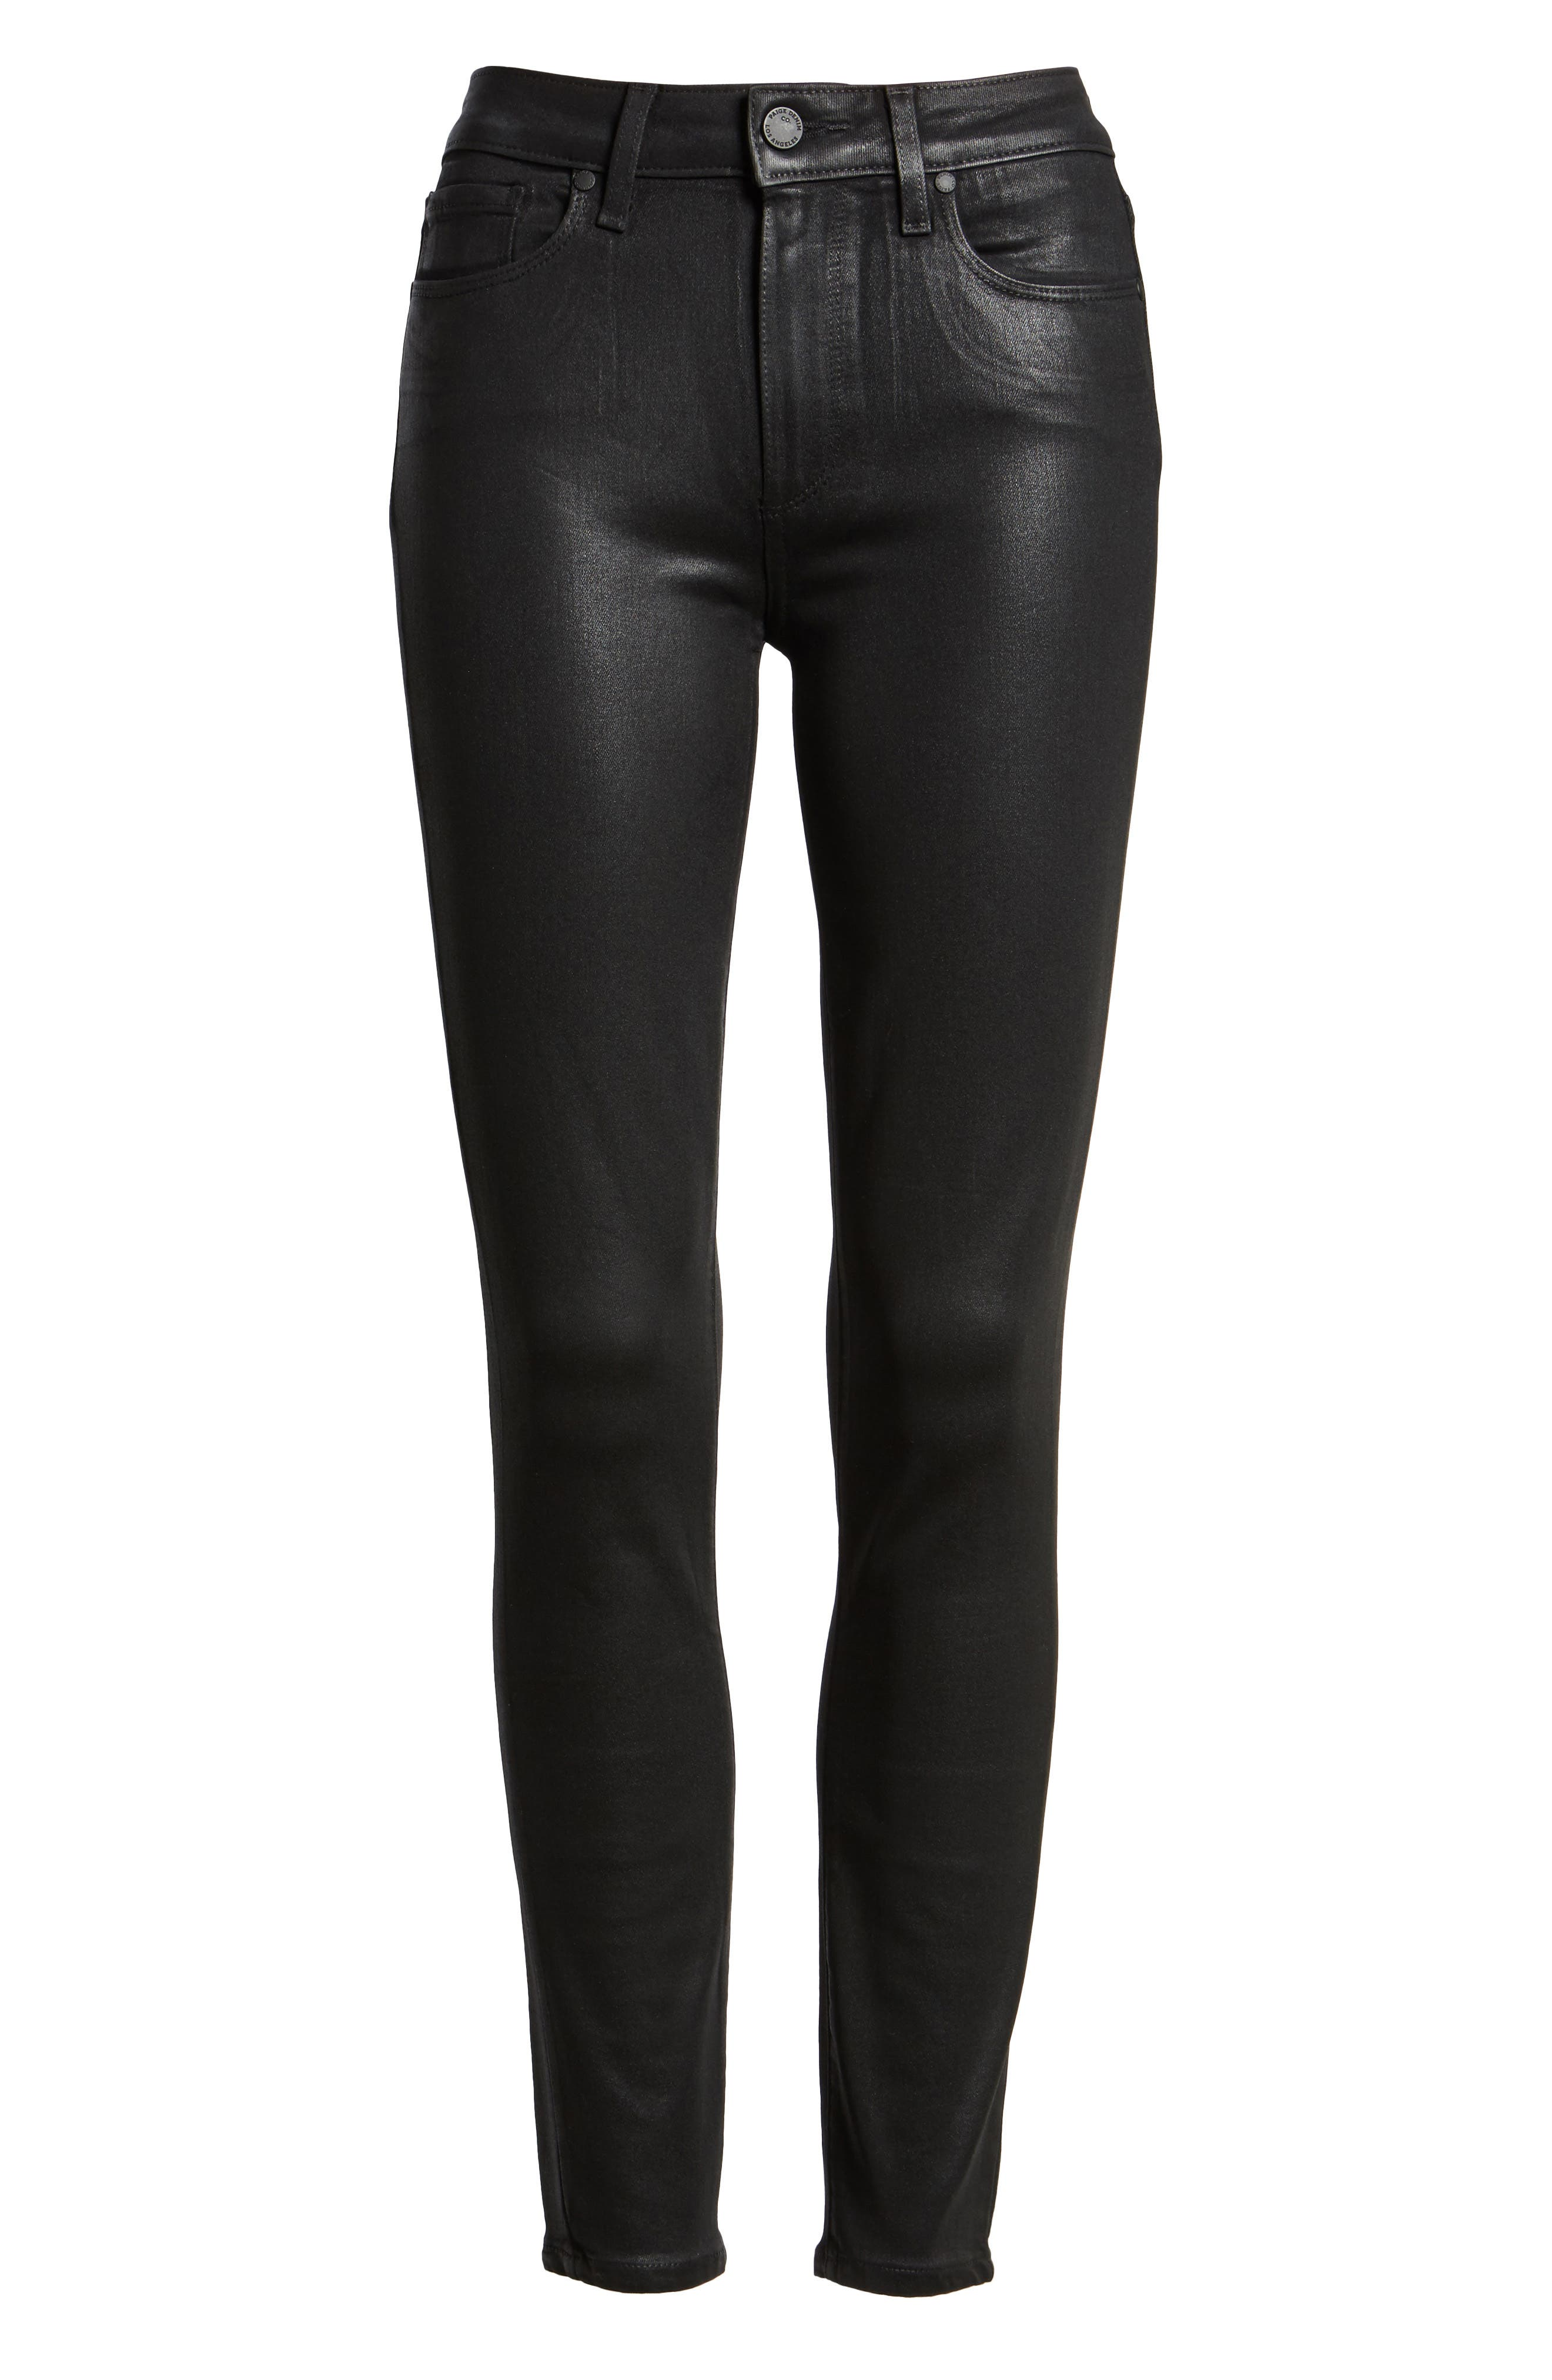 PAIGE,                             Transcend - Hoxton High Waist Ankle Skinny Jeans,                             Alternate thumbnail 7, color,                             LUXE BLACK COATED